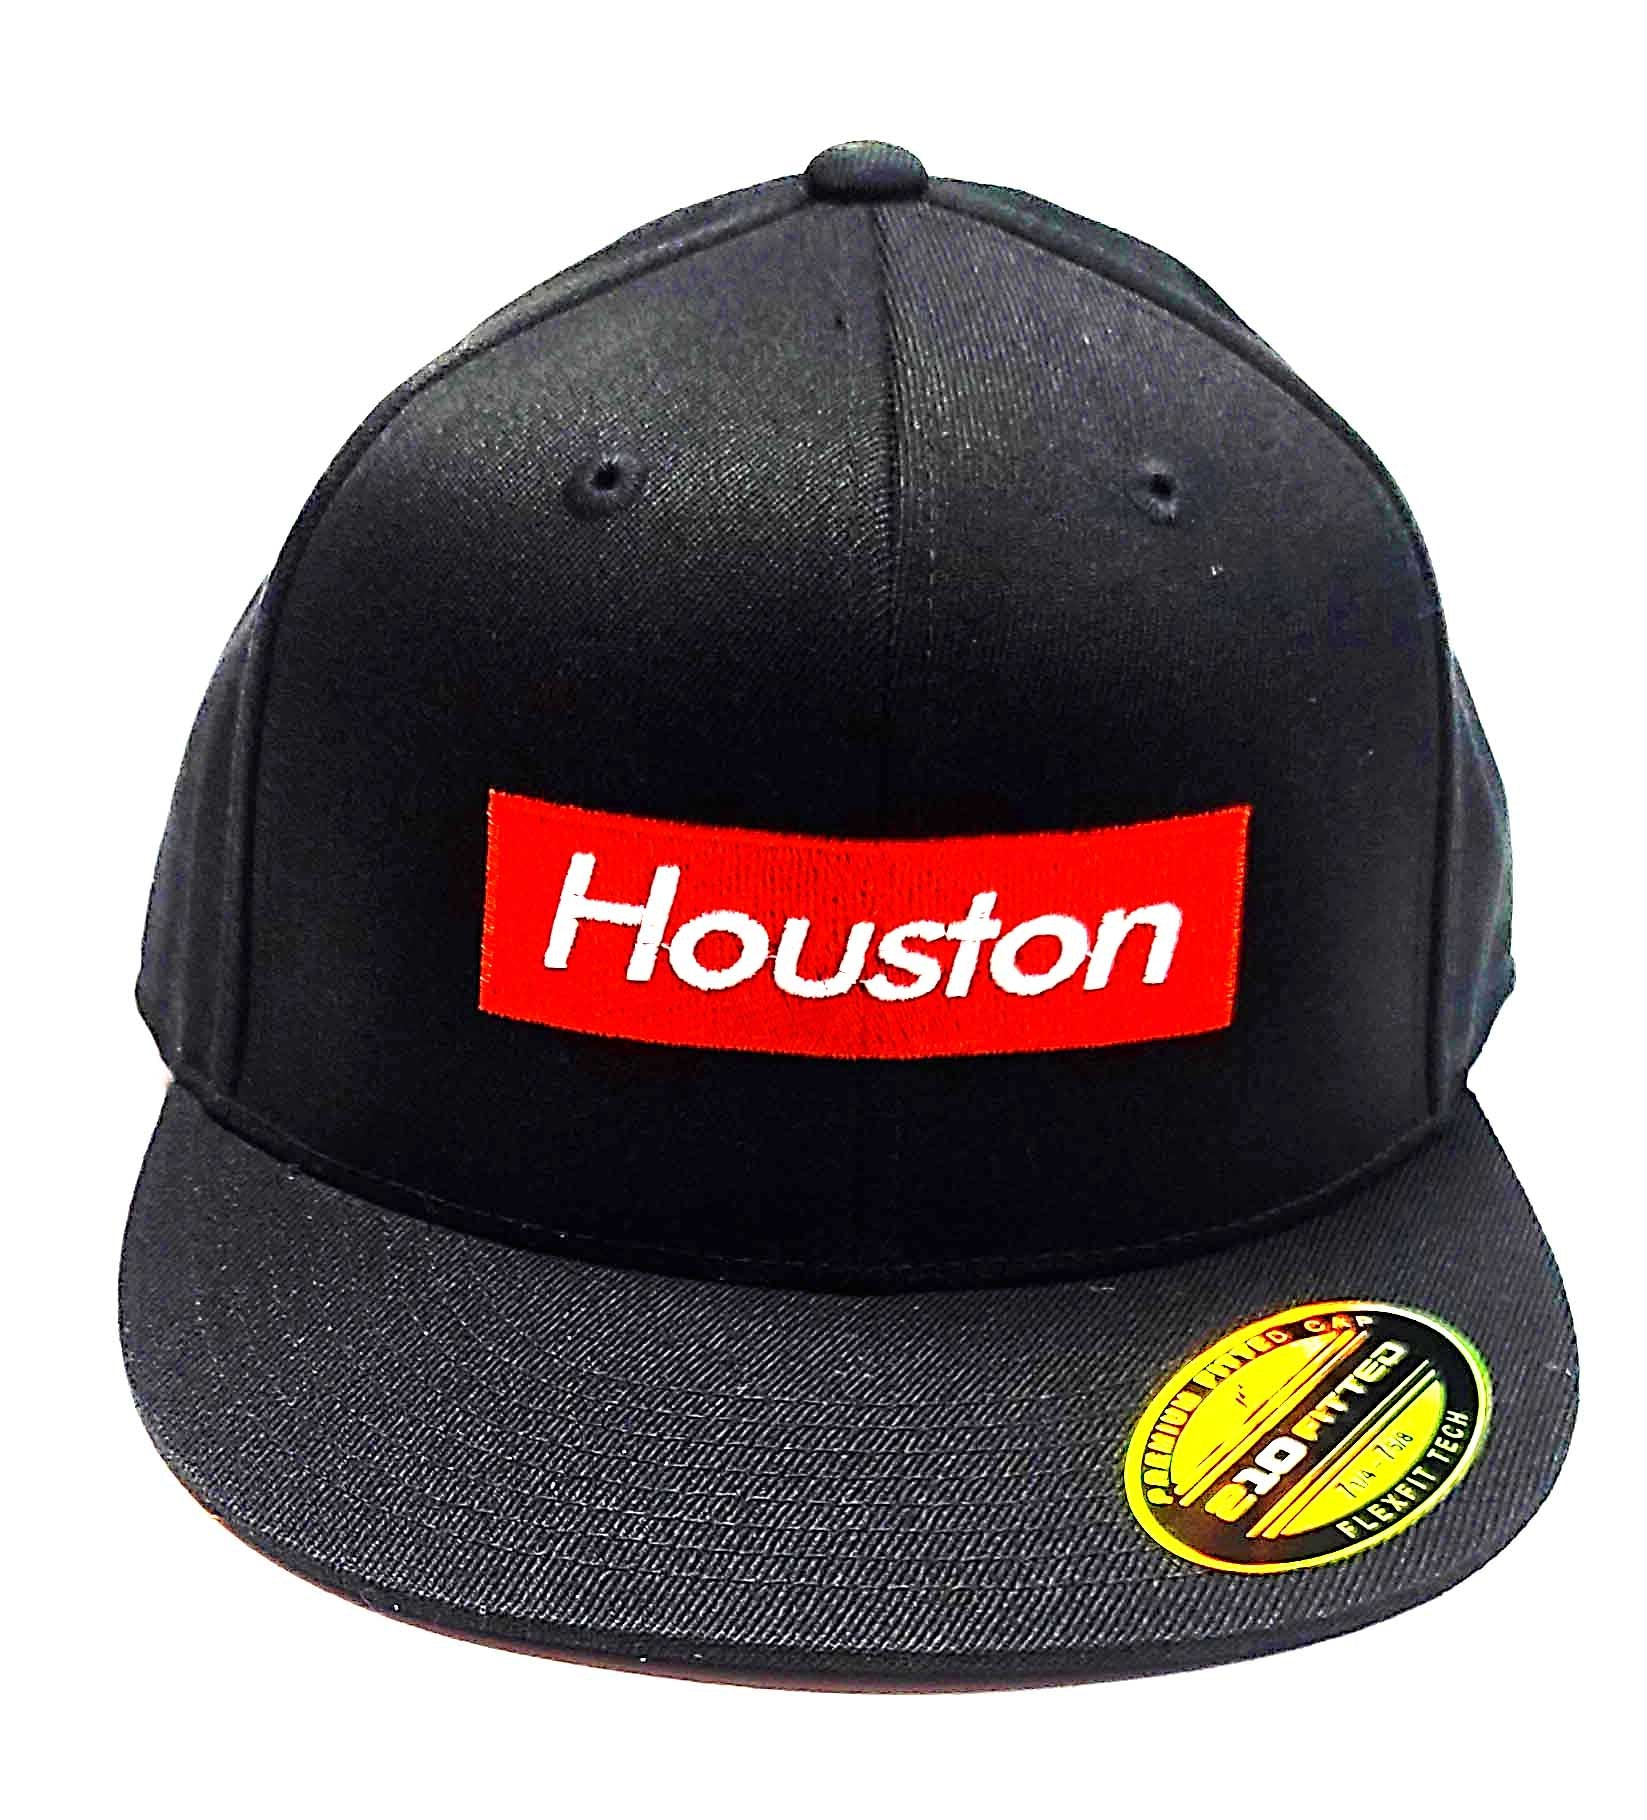 Houston Supreme logo on a Flexfit 6210 semi fitted cap front view